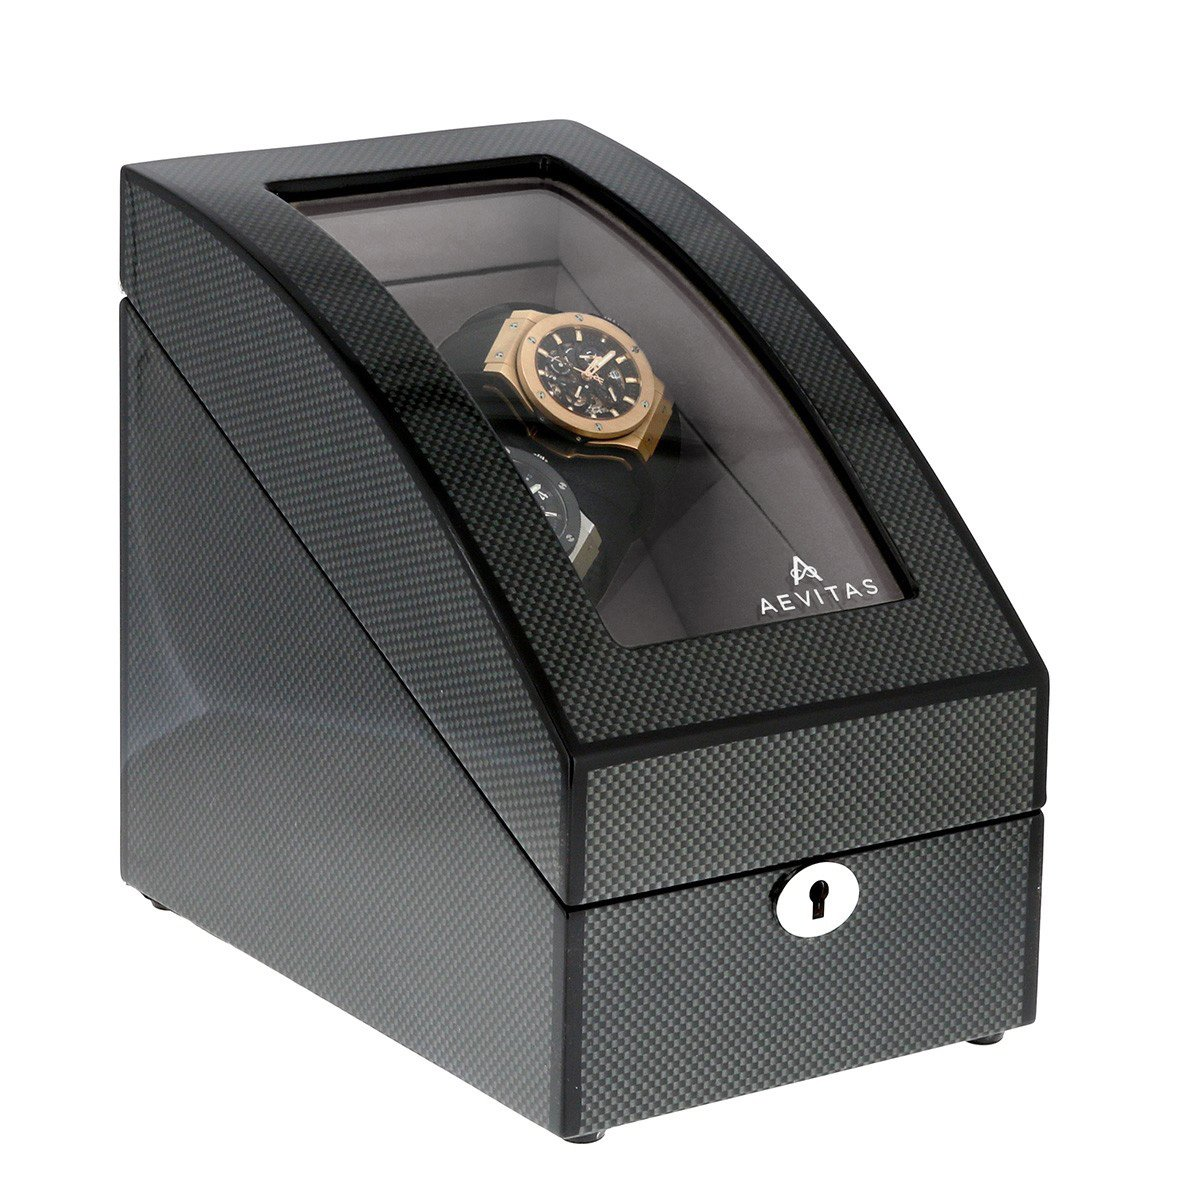 Dual Carbon Fibre 2 Watch Winder with LED Light and Storage for 2 Watches by Aevitas